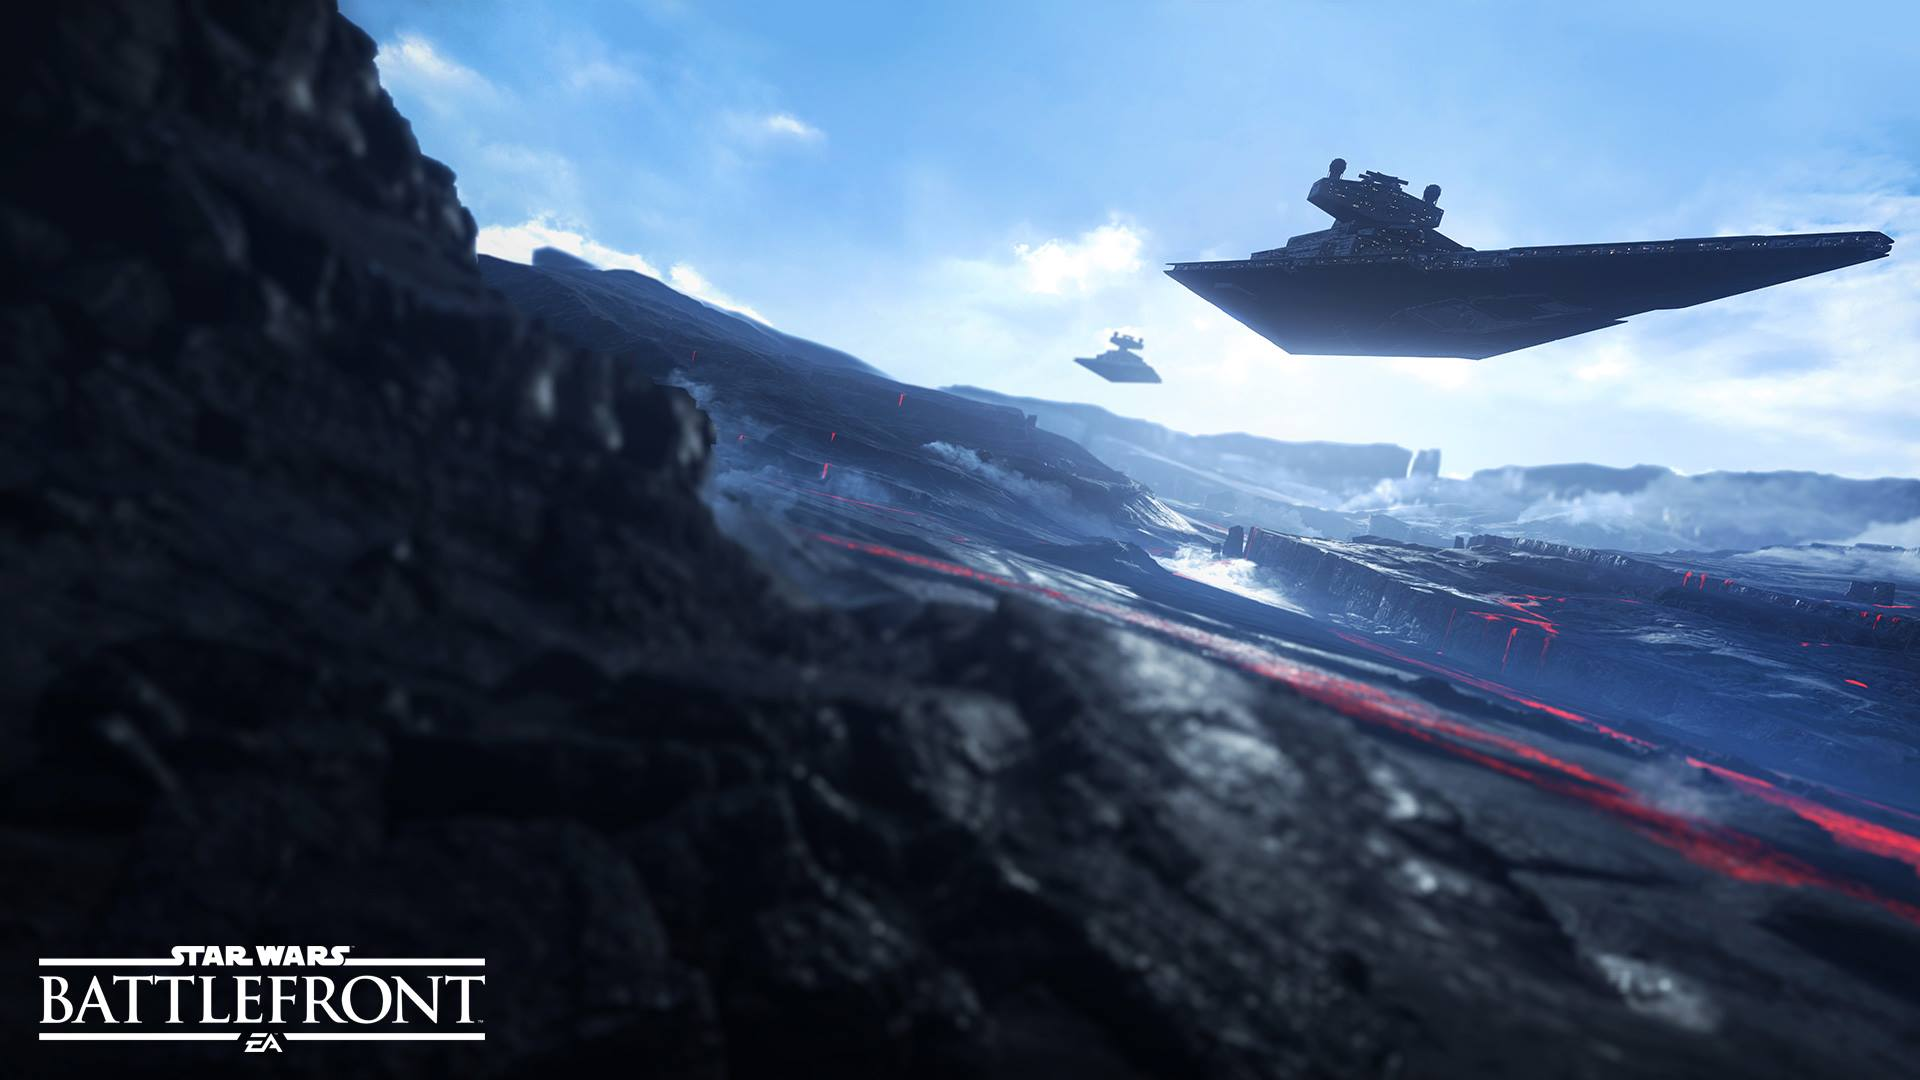 star wars battlefront video game wallpaper 48663 1920x1080 px